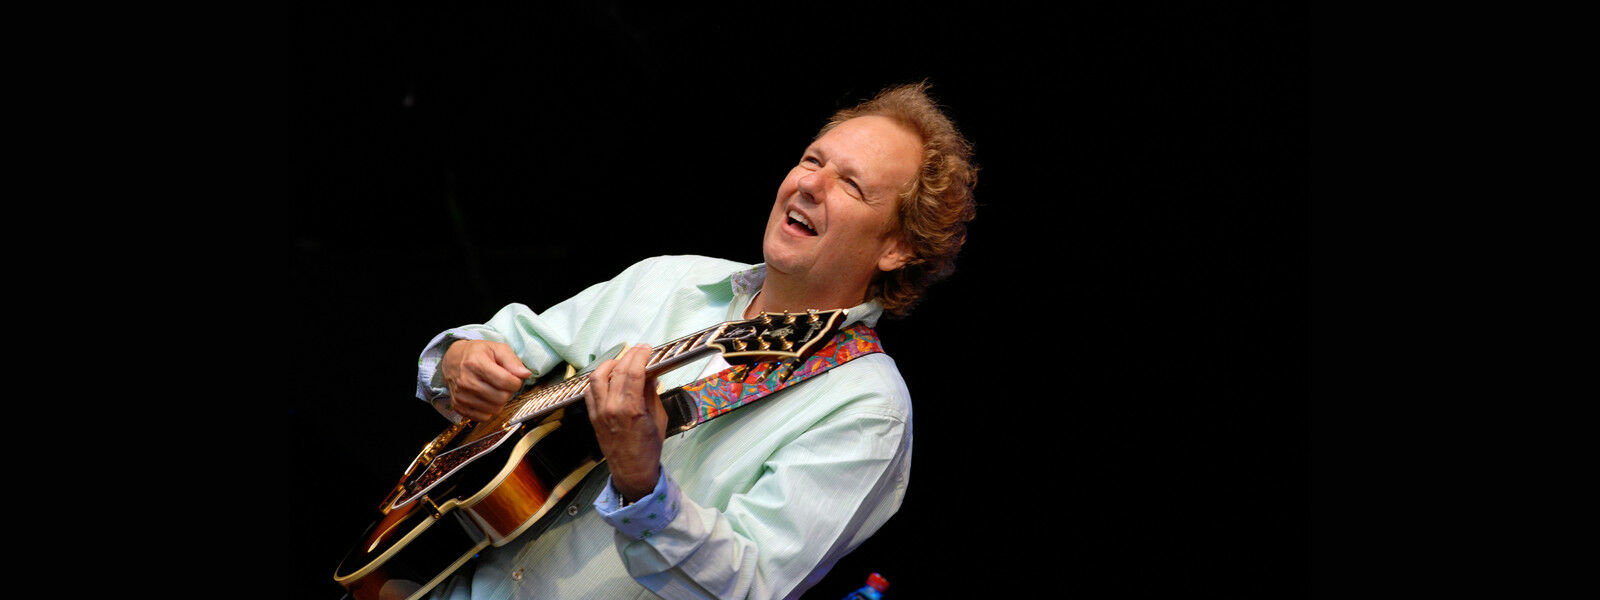 Lee Ritenour Tickets (21+ Event)